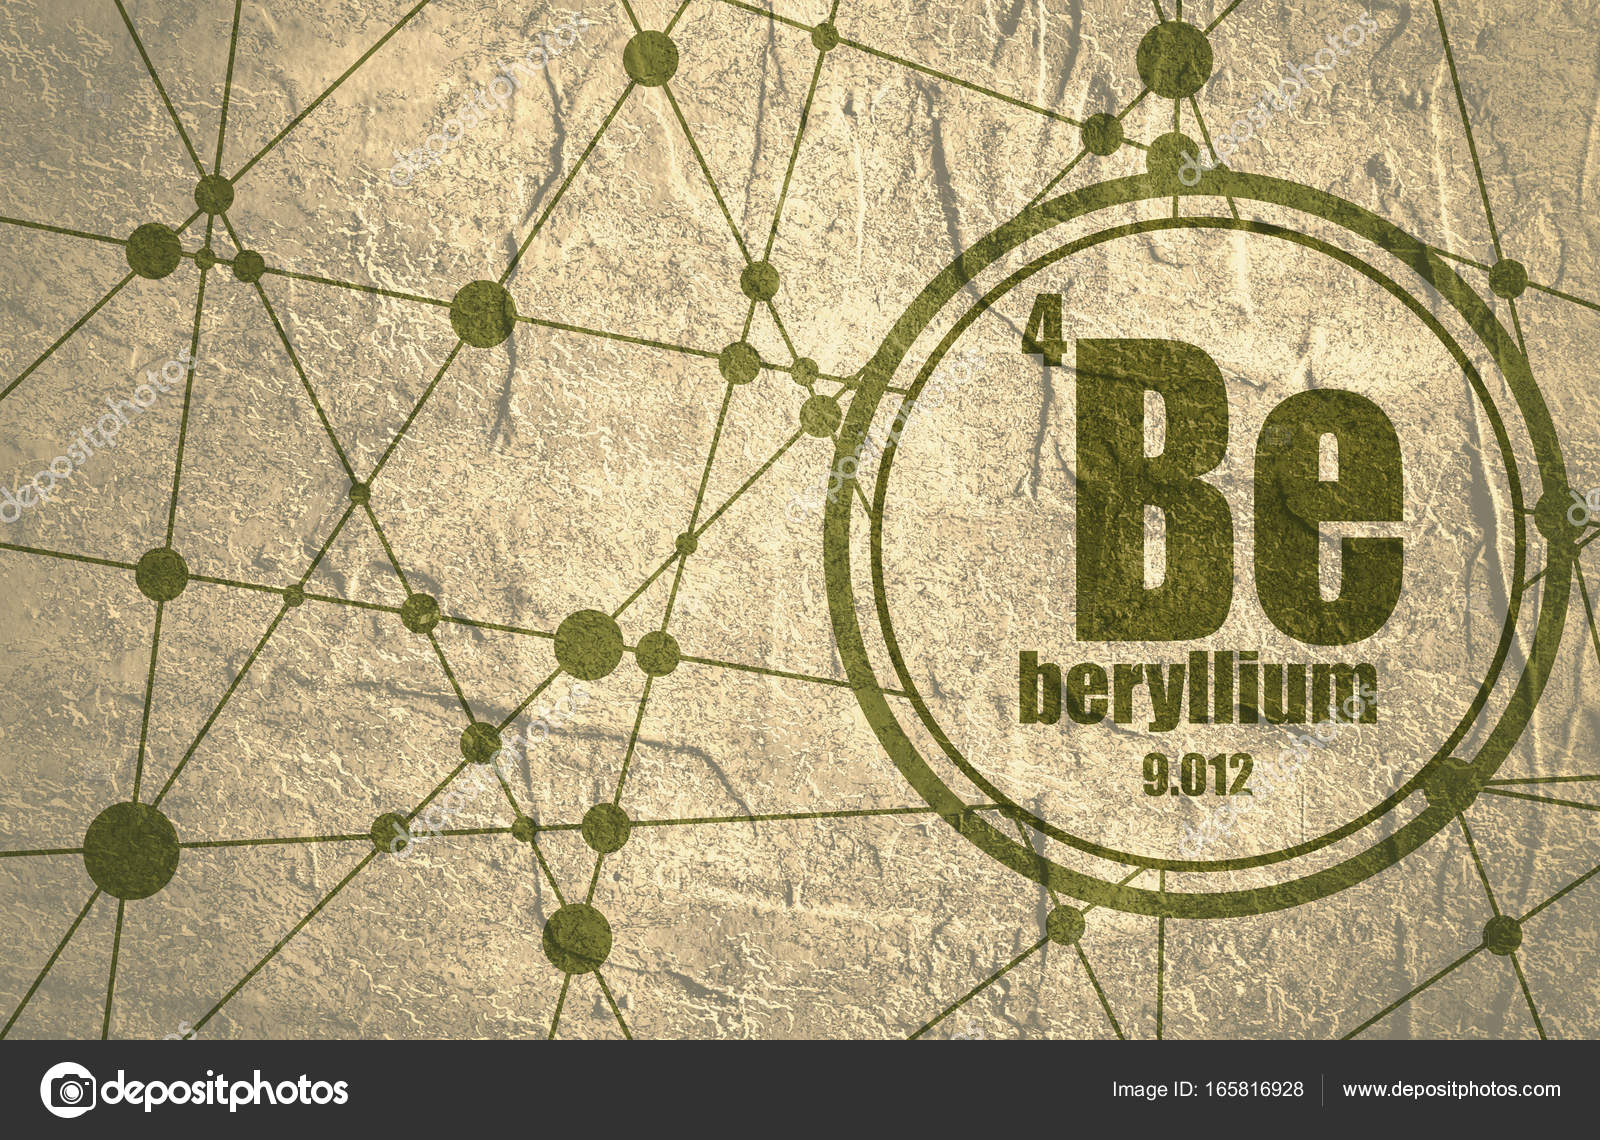 Beryllium chemical element stock photo jegasra 165816928 beryllium chemical element sign with atomic number and atomic weight chemical element of periodic table molecule and communication background biocorpaavc Images